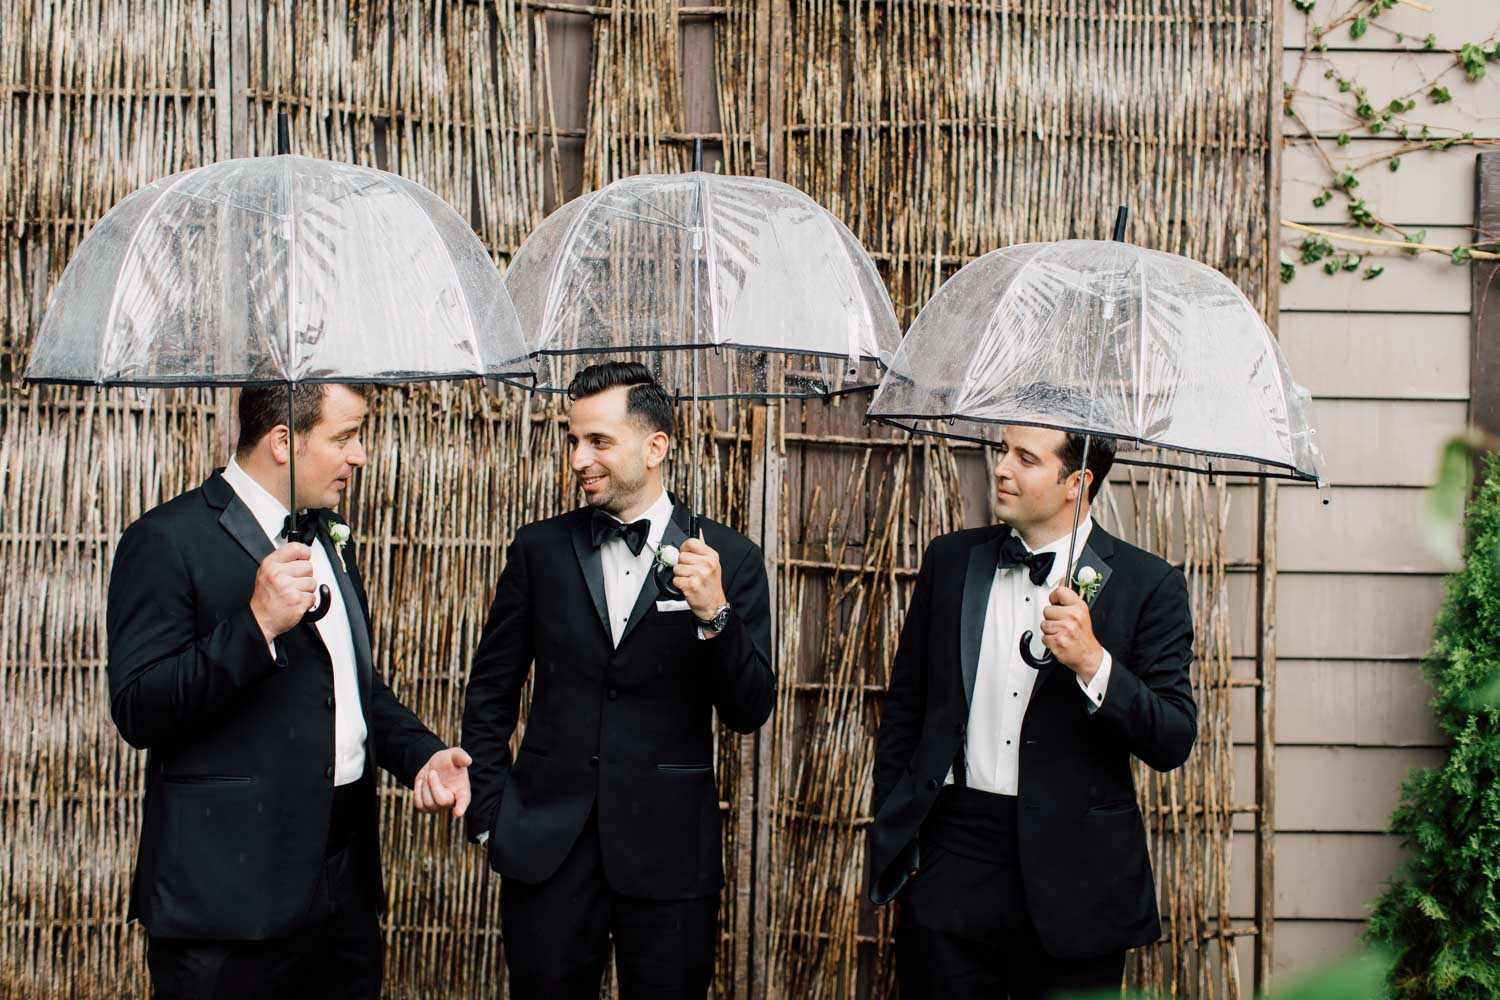 wedding pictures with umbrellas